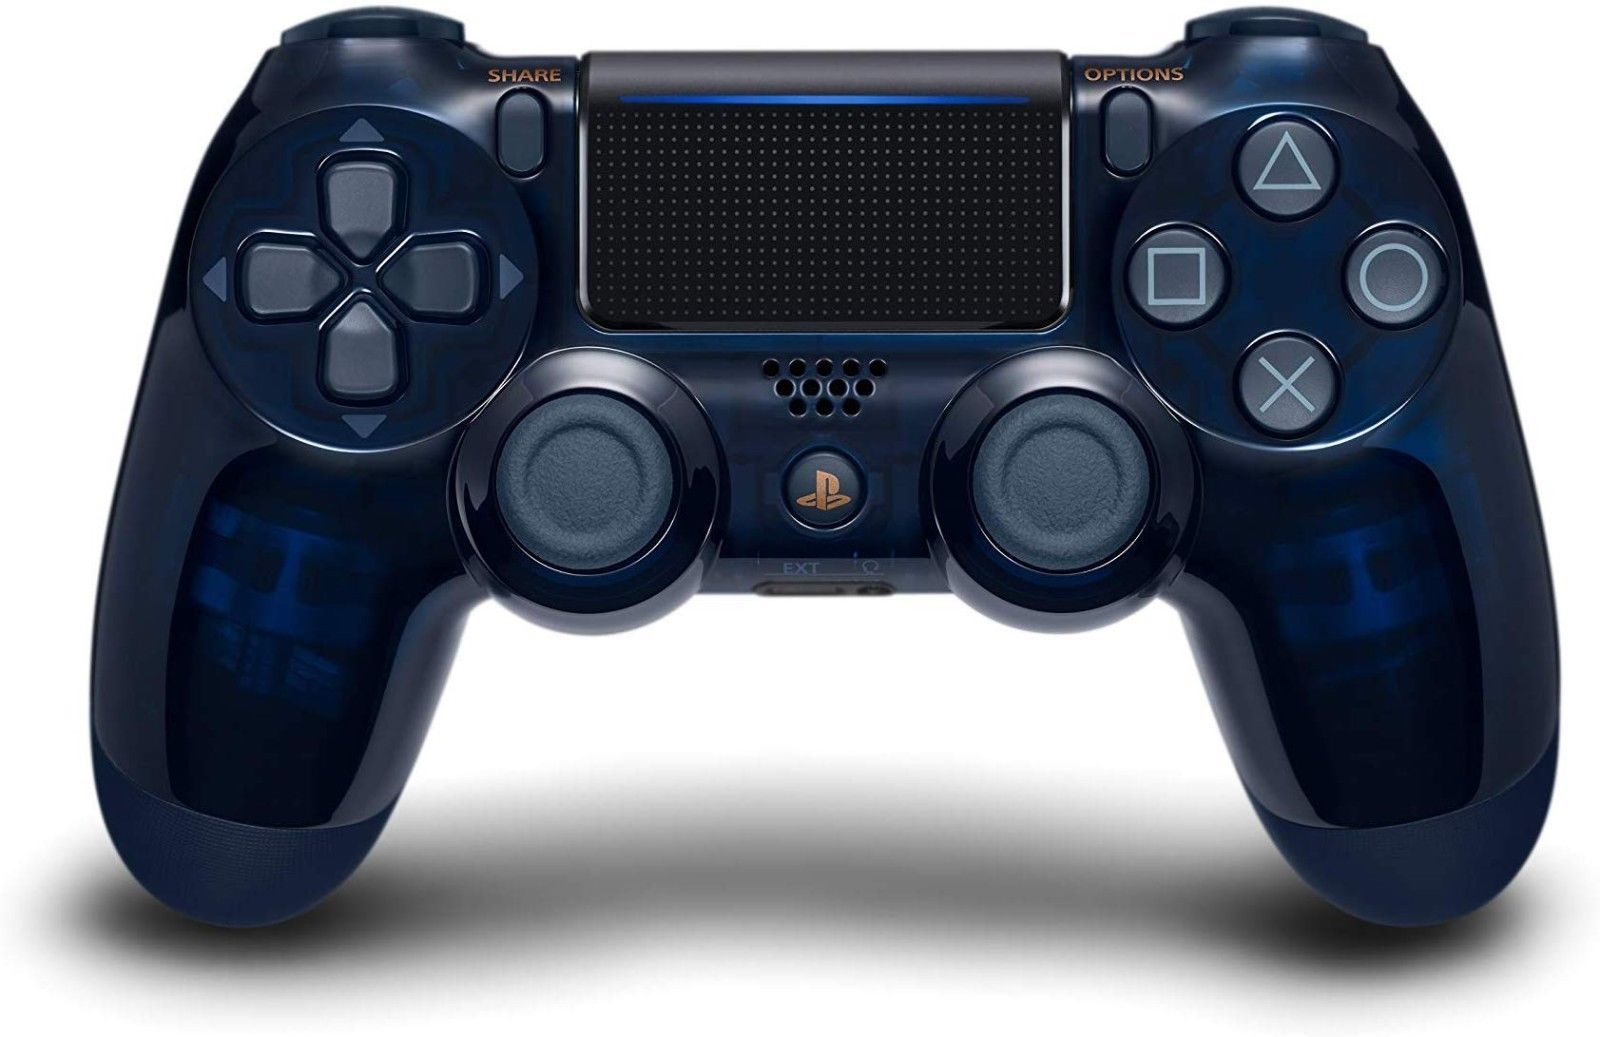 Sony Dualshock Playstation 4 Ps4 Wireless Controller Second Generation Ebay Dualshock Wireless Controller Playstation 4 Accessories